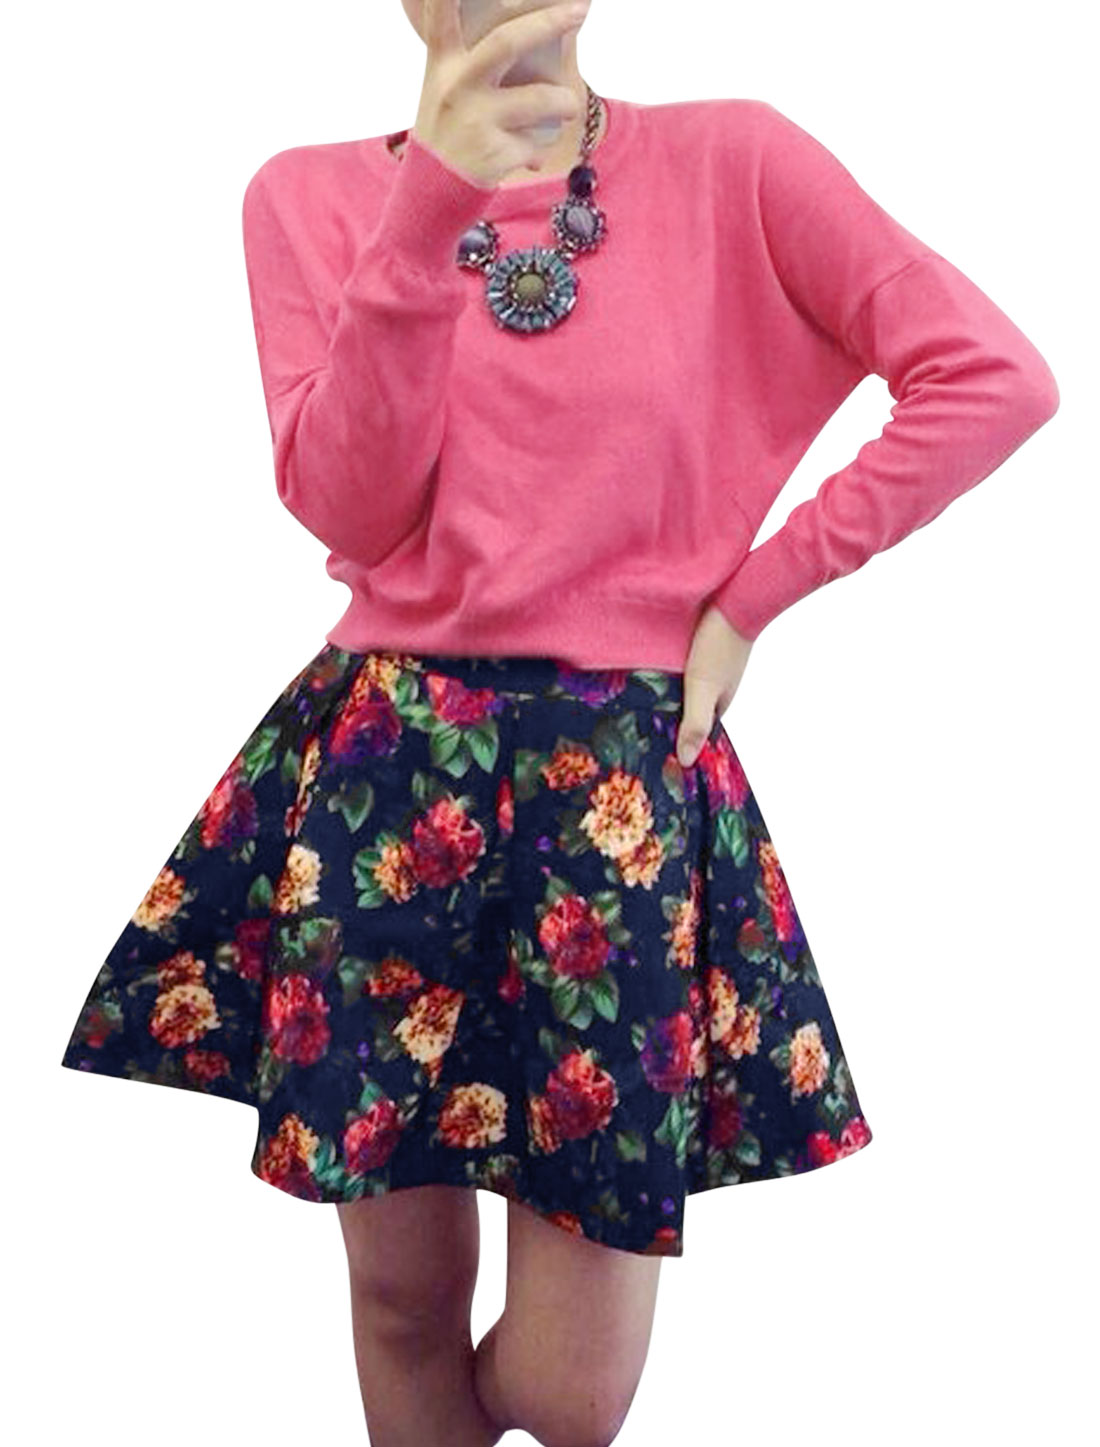 Ladies Fuchsia Bat Sleeves Pullover Top w Floral Prints Skirt Set XS